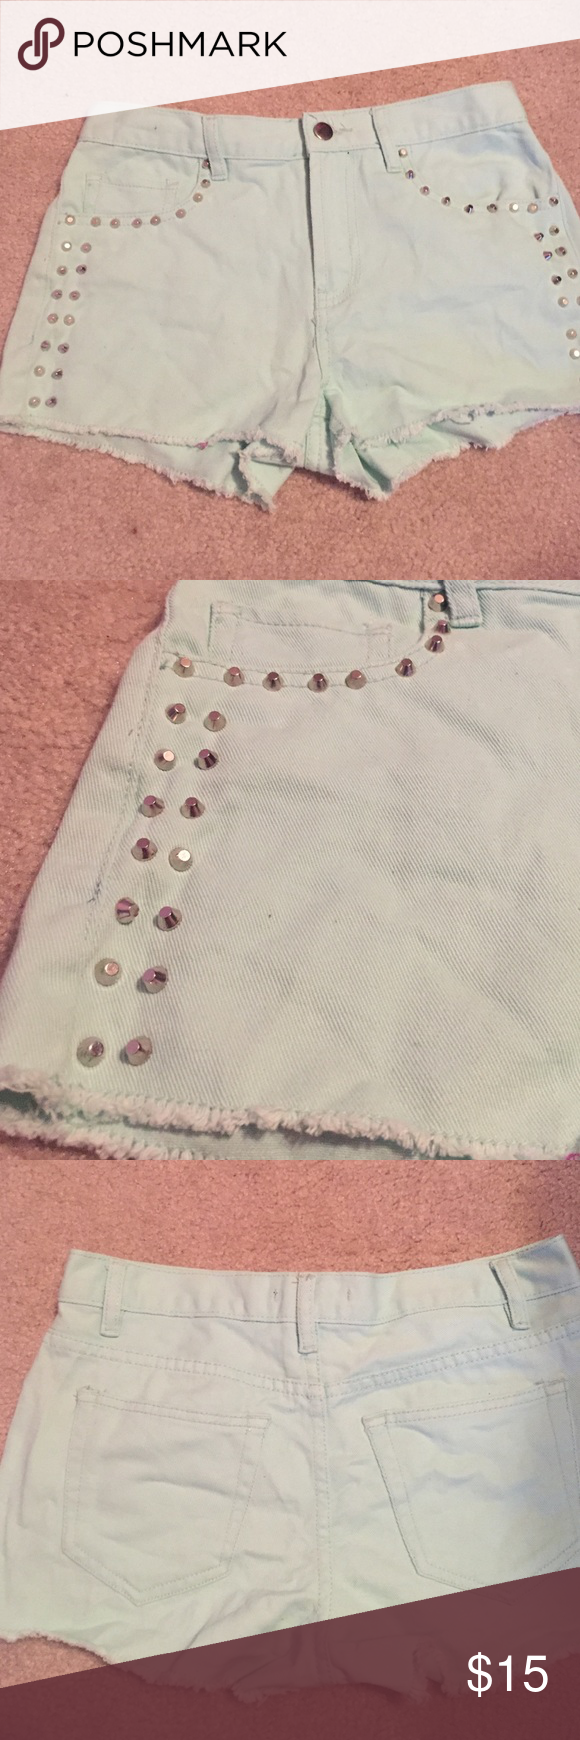 SALE Forever 21 Mint Studded Cutoff Denim Shorts Forever 21 mint denim shorts with silver studs on the side, size 26, only tried on Forever 21 Shorts Jean Shorts